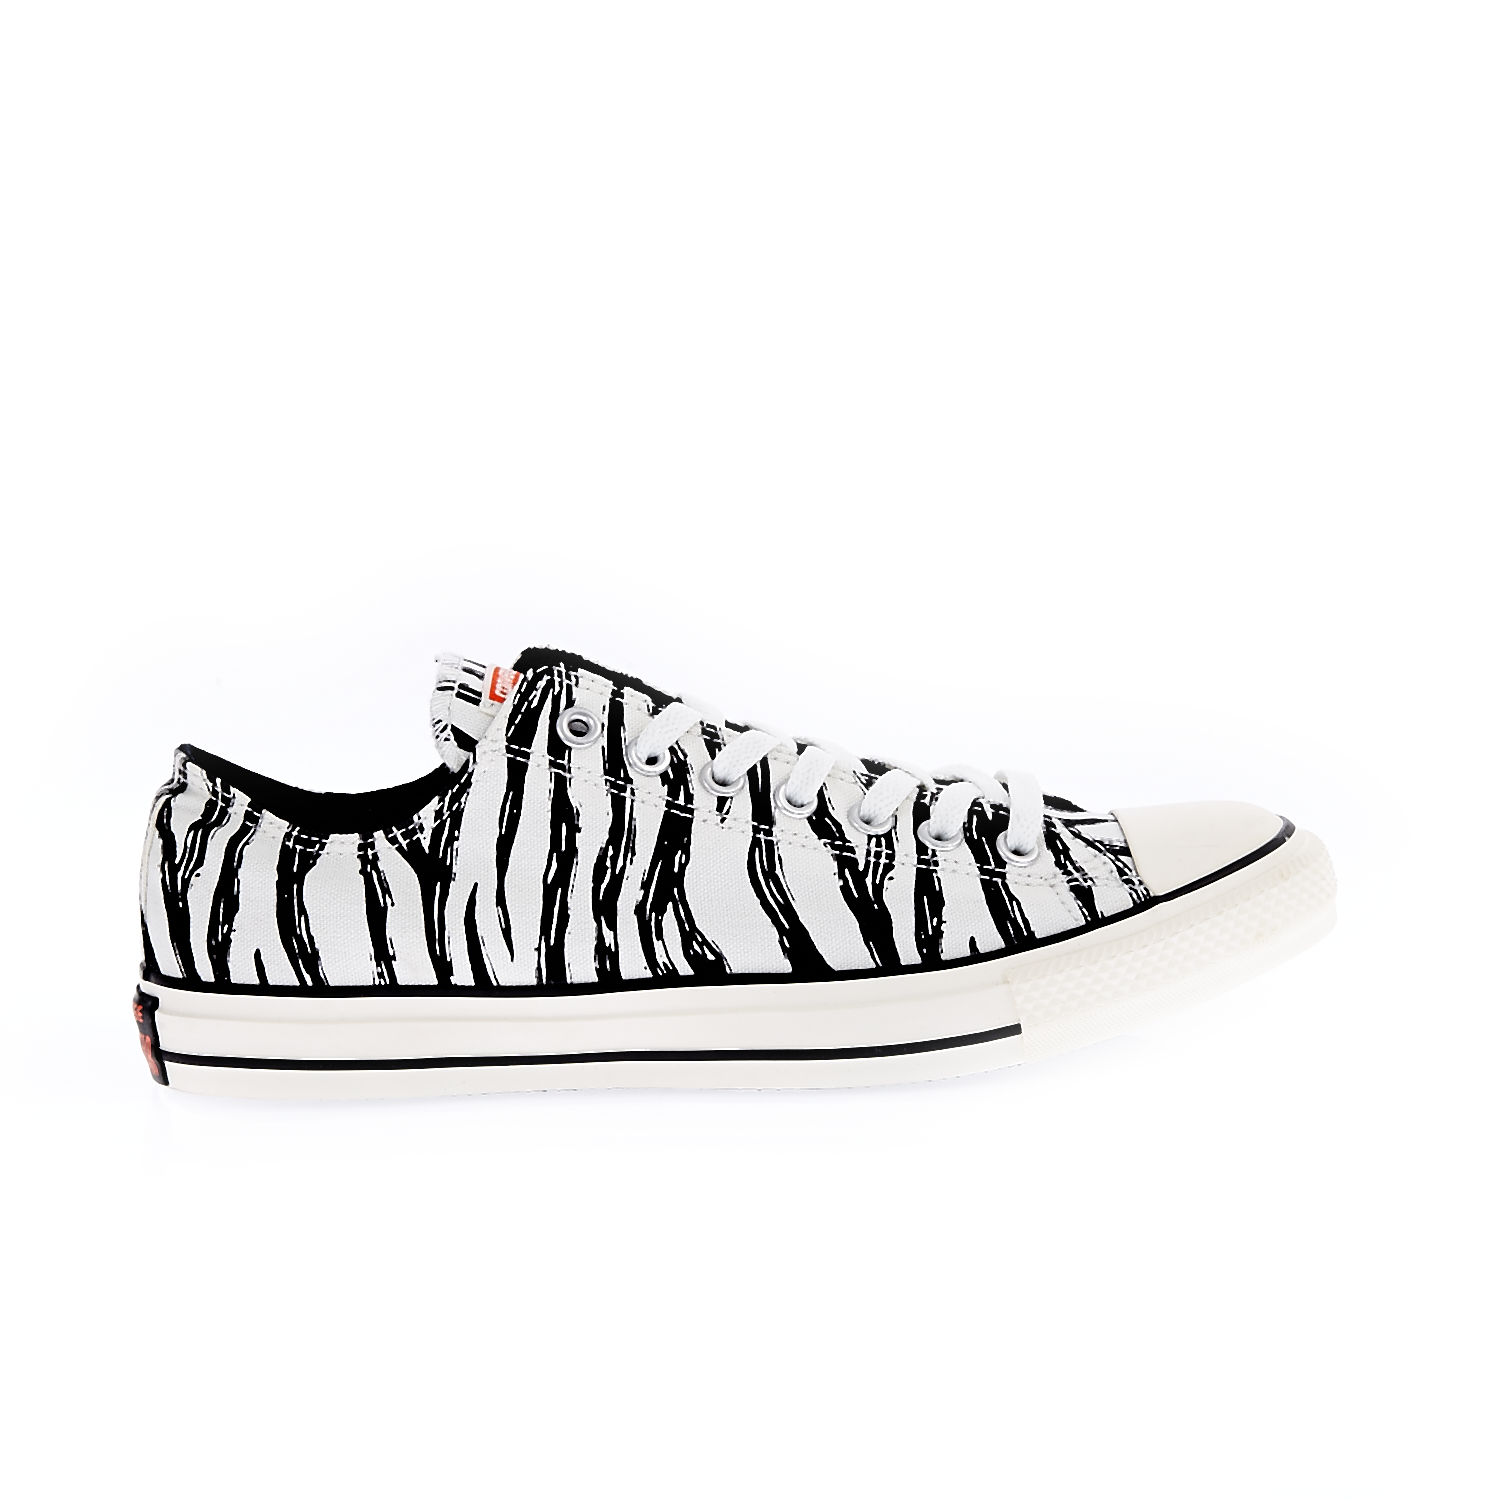 CONVERSE – Unisex παπούτσια Chuck Taylor All Star Ox λευκά-μαύρα